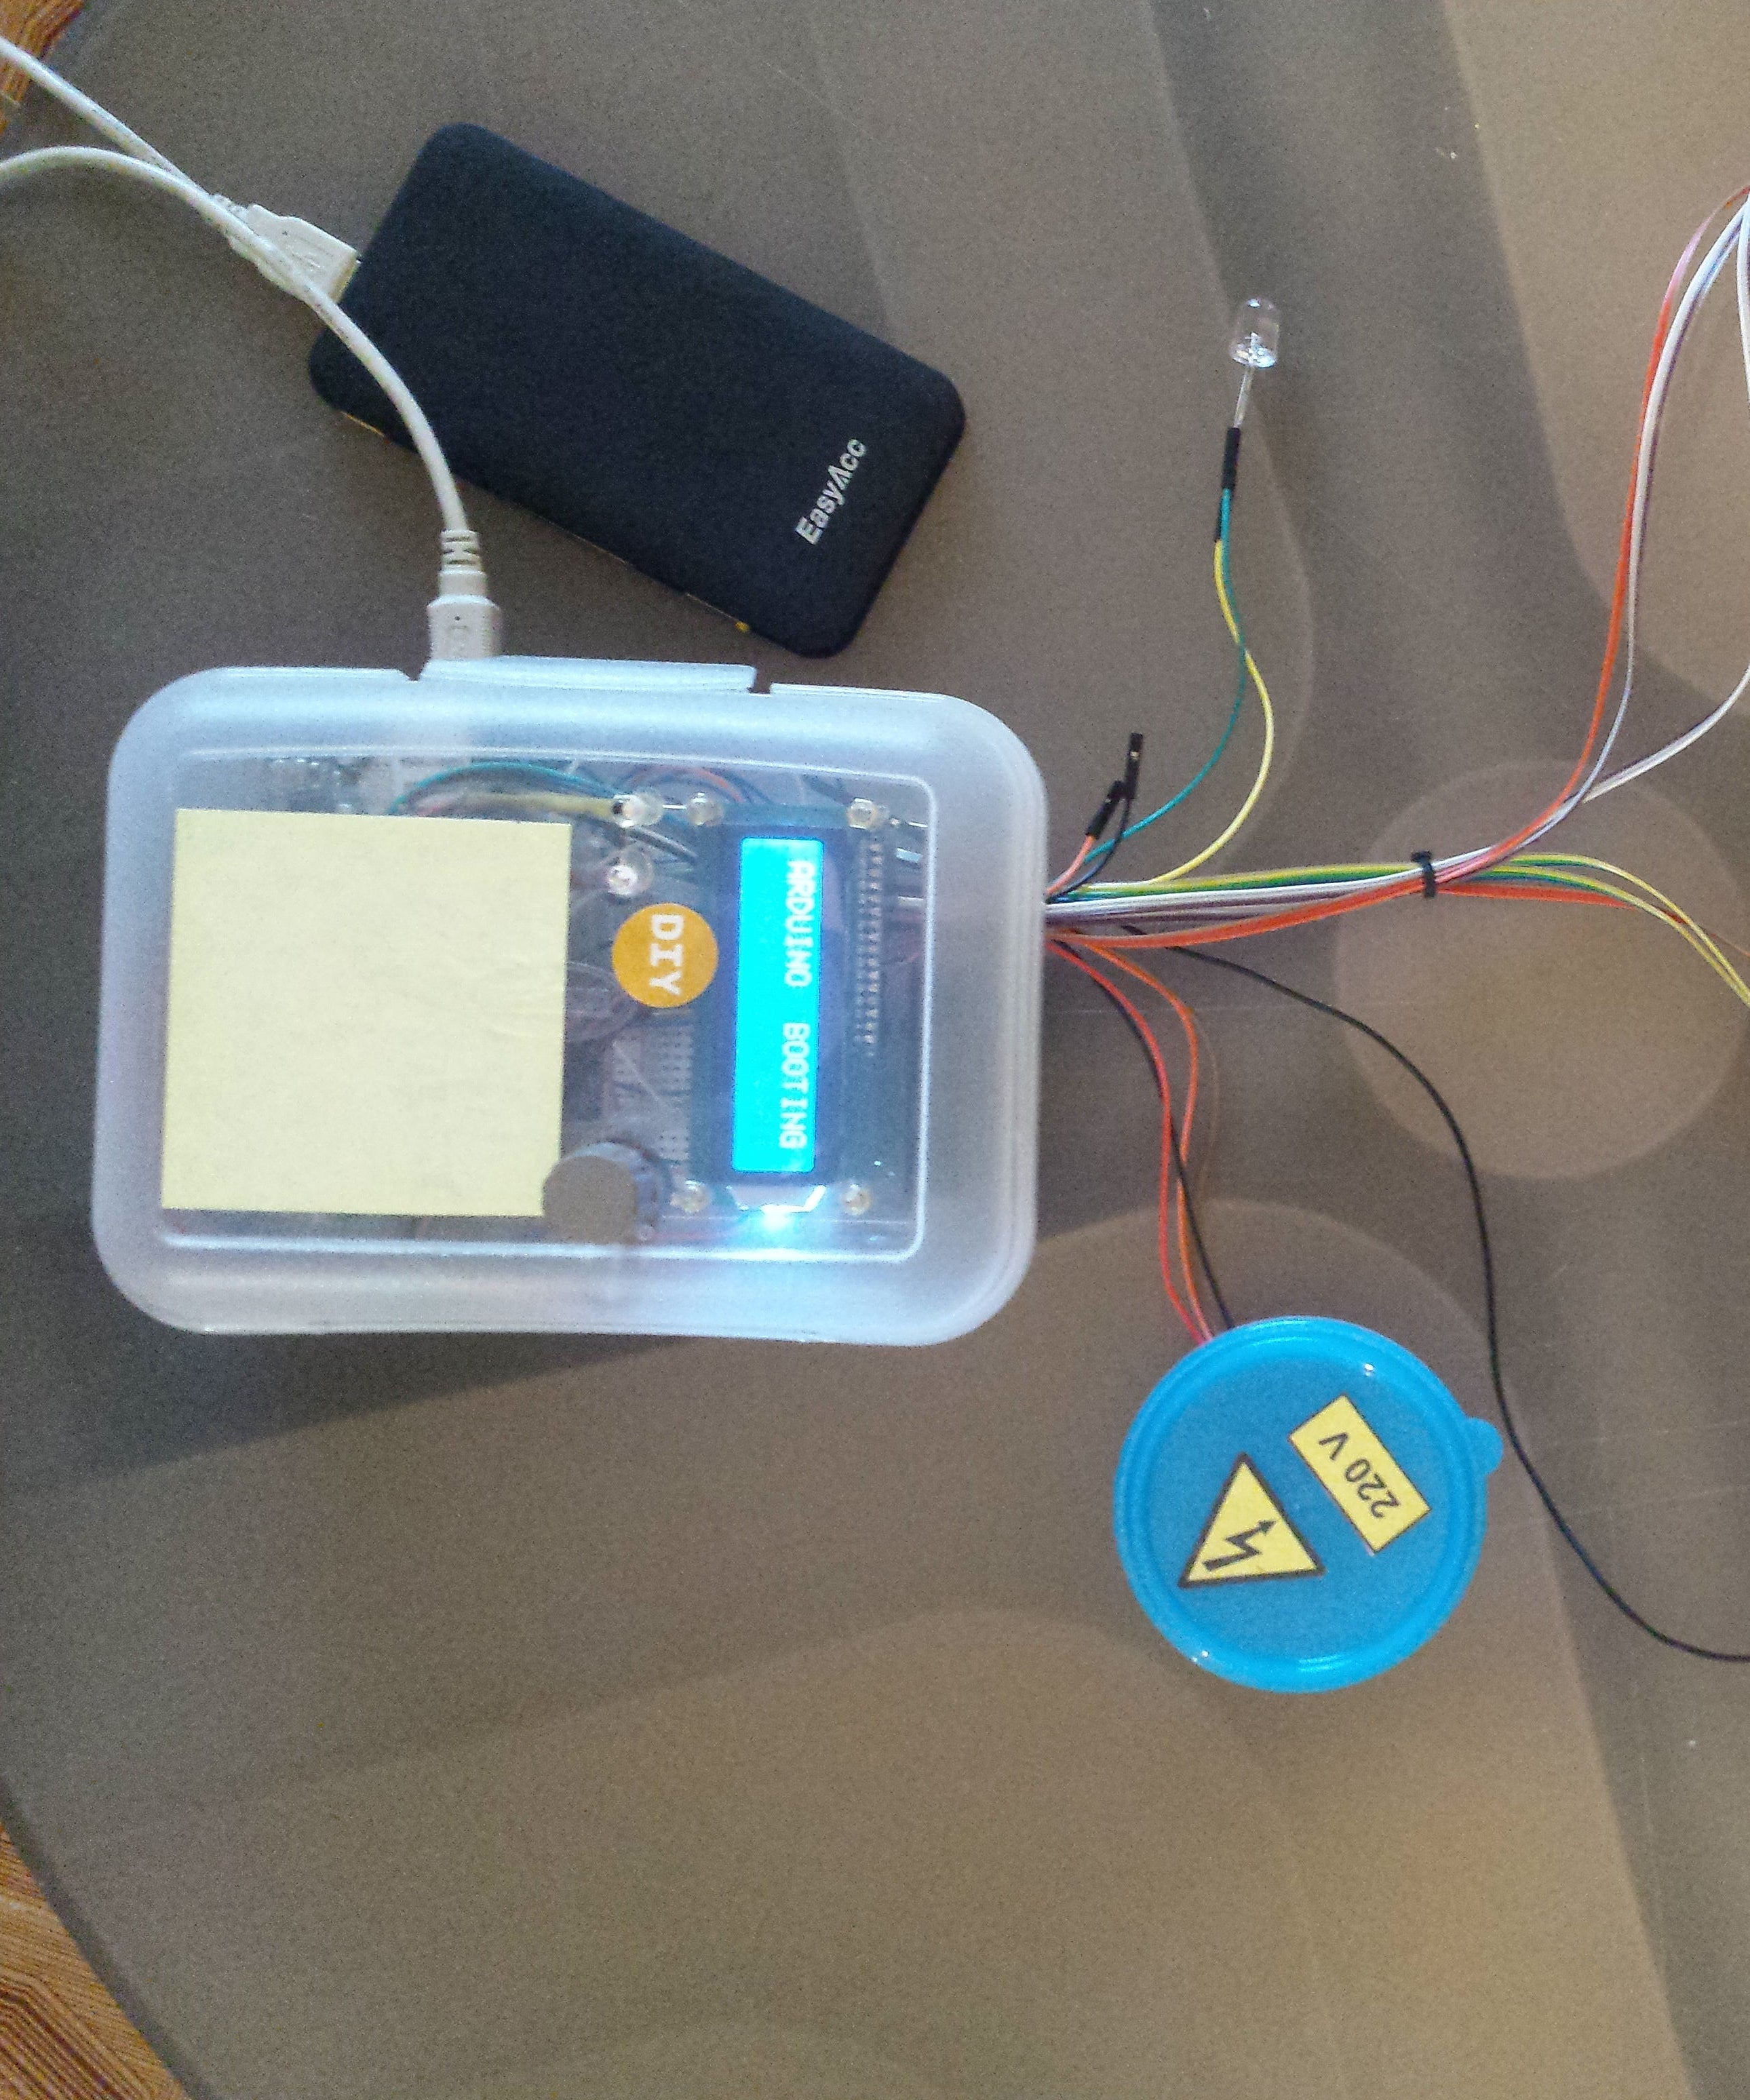 Smart Home With Arduino Ethernet Shield And Teleduino With Web App 5 Steps Instructables